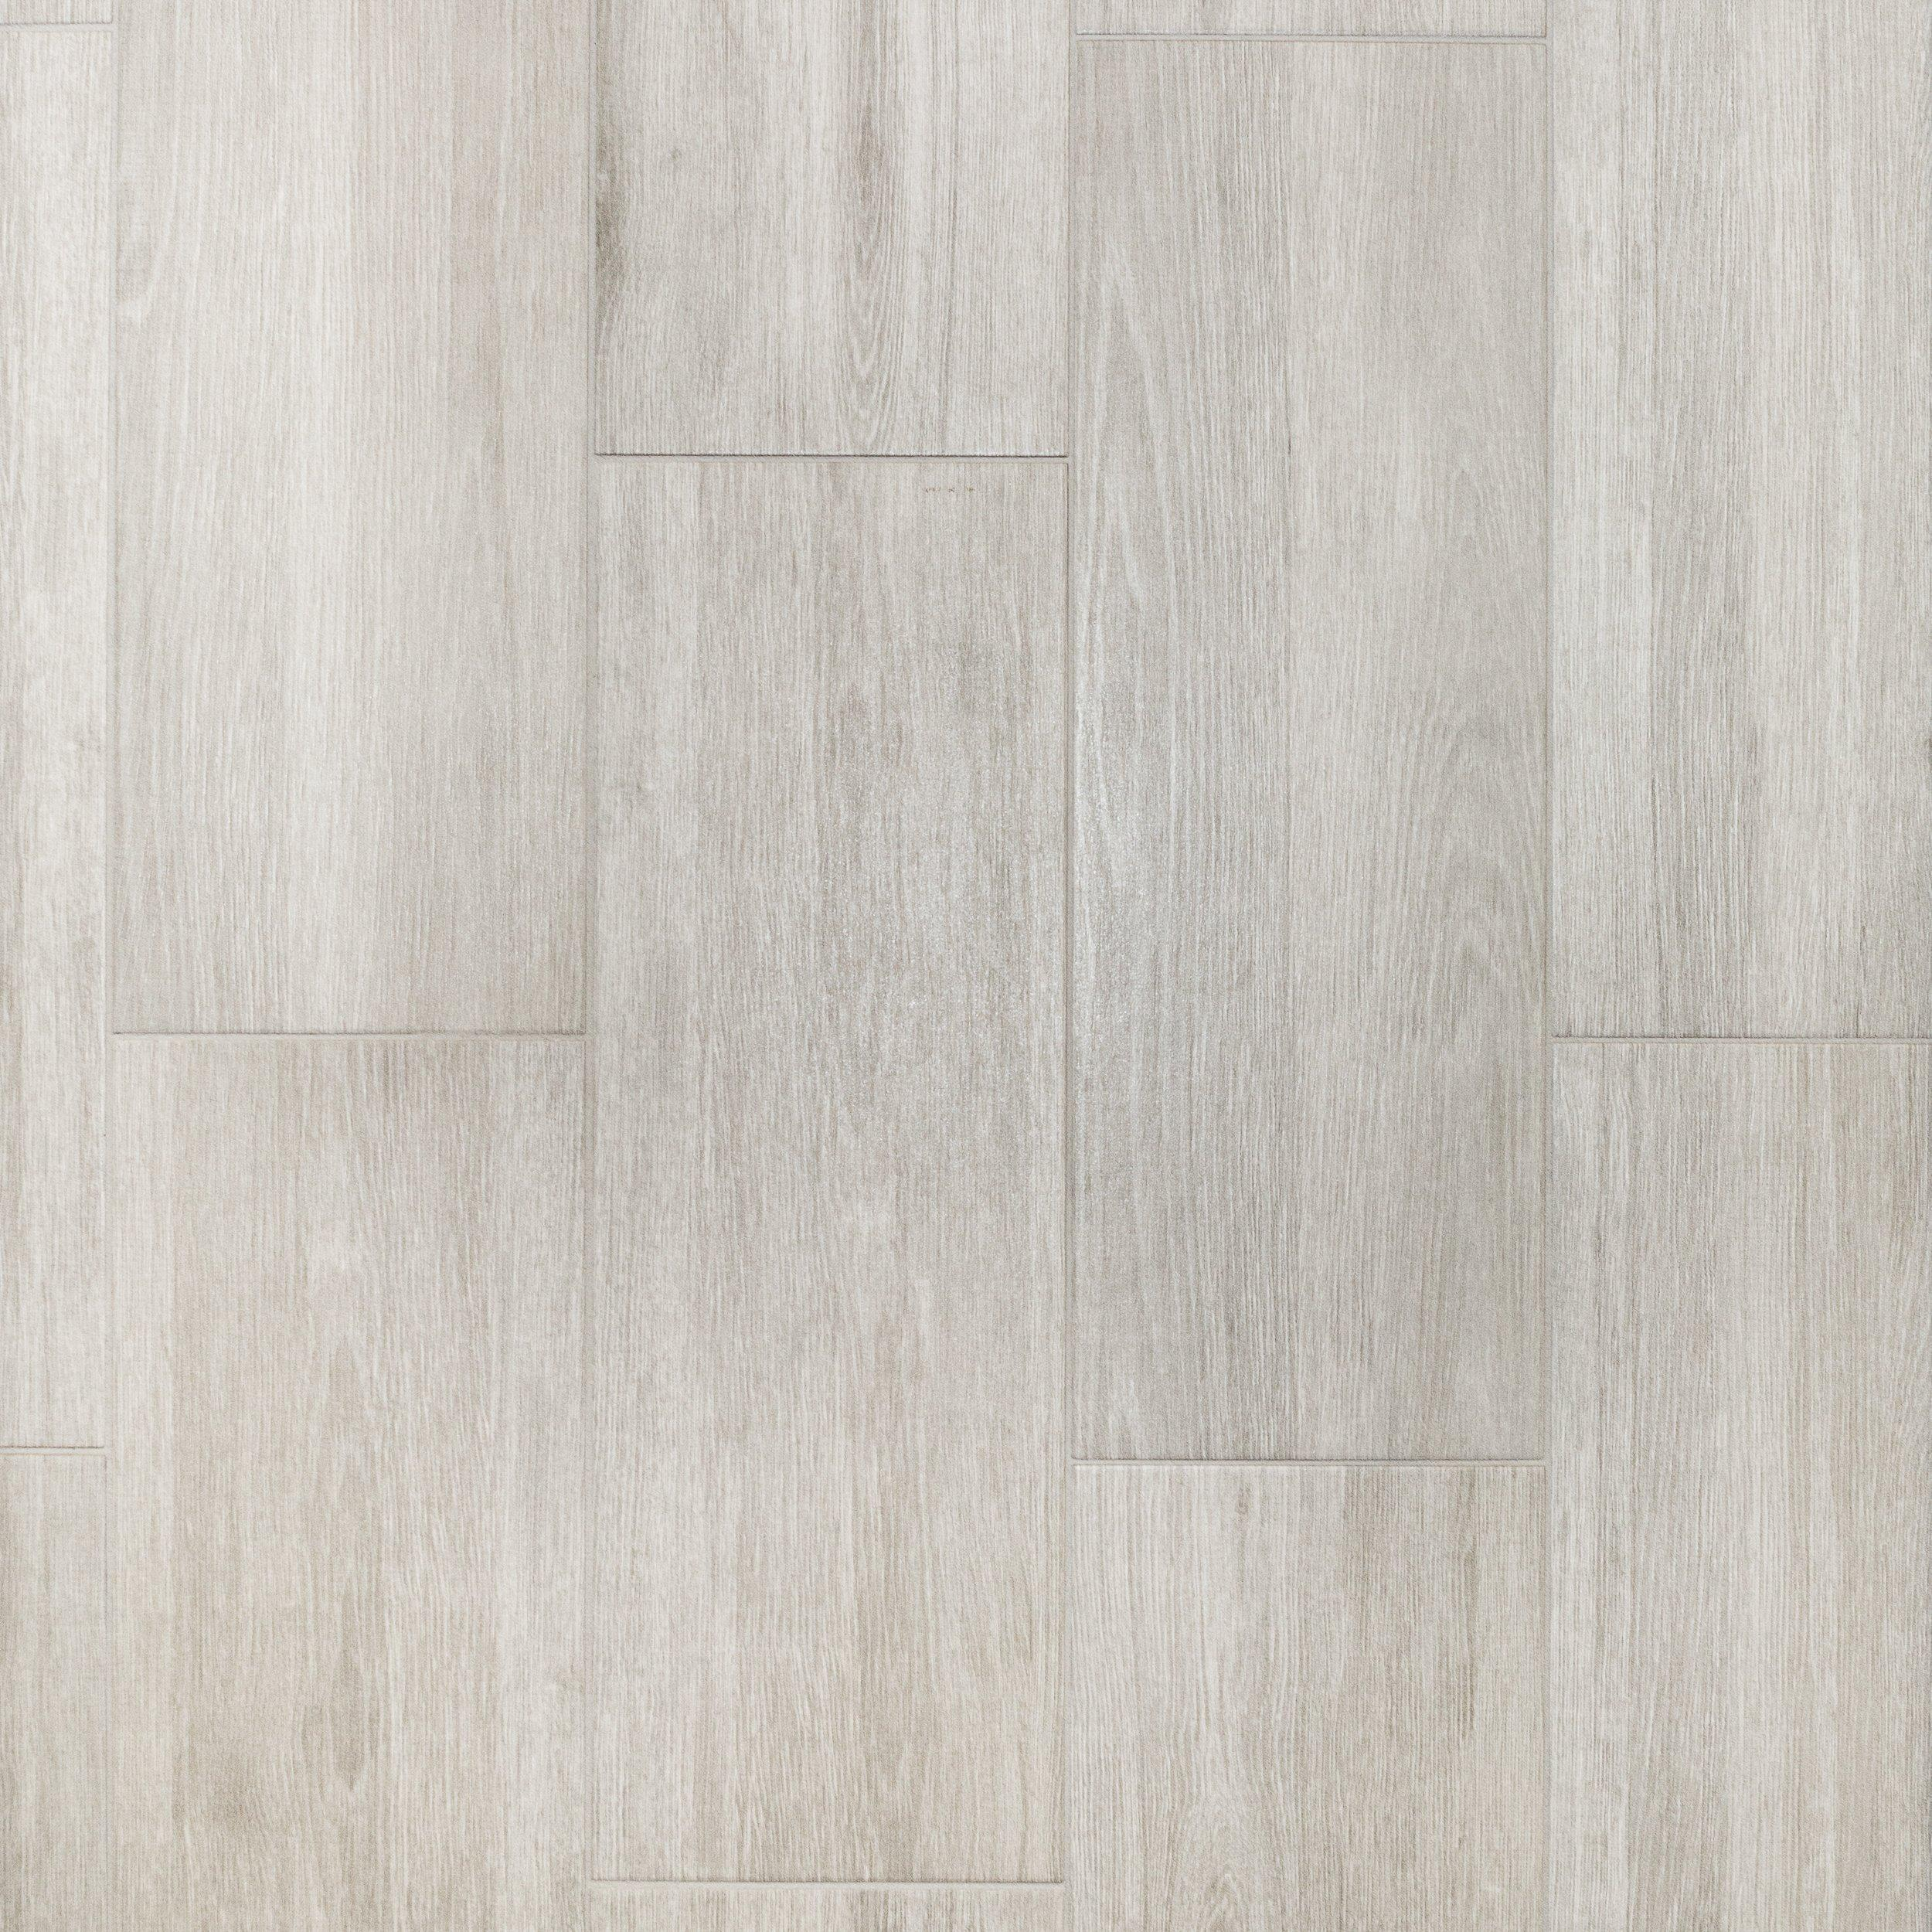 Wood Look Tile West Houston Wood Look Tile Millelegni Most Tile That Looks Like Wood